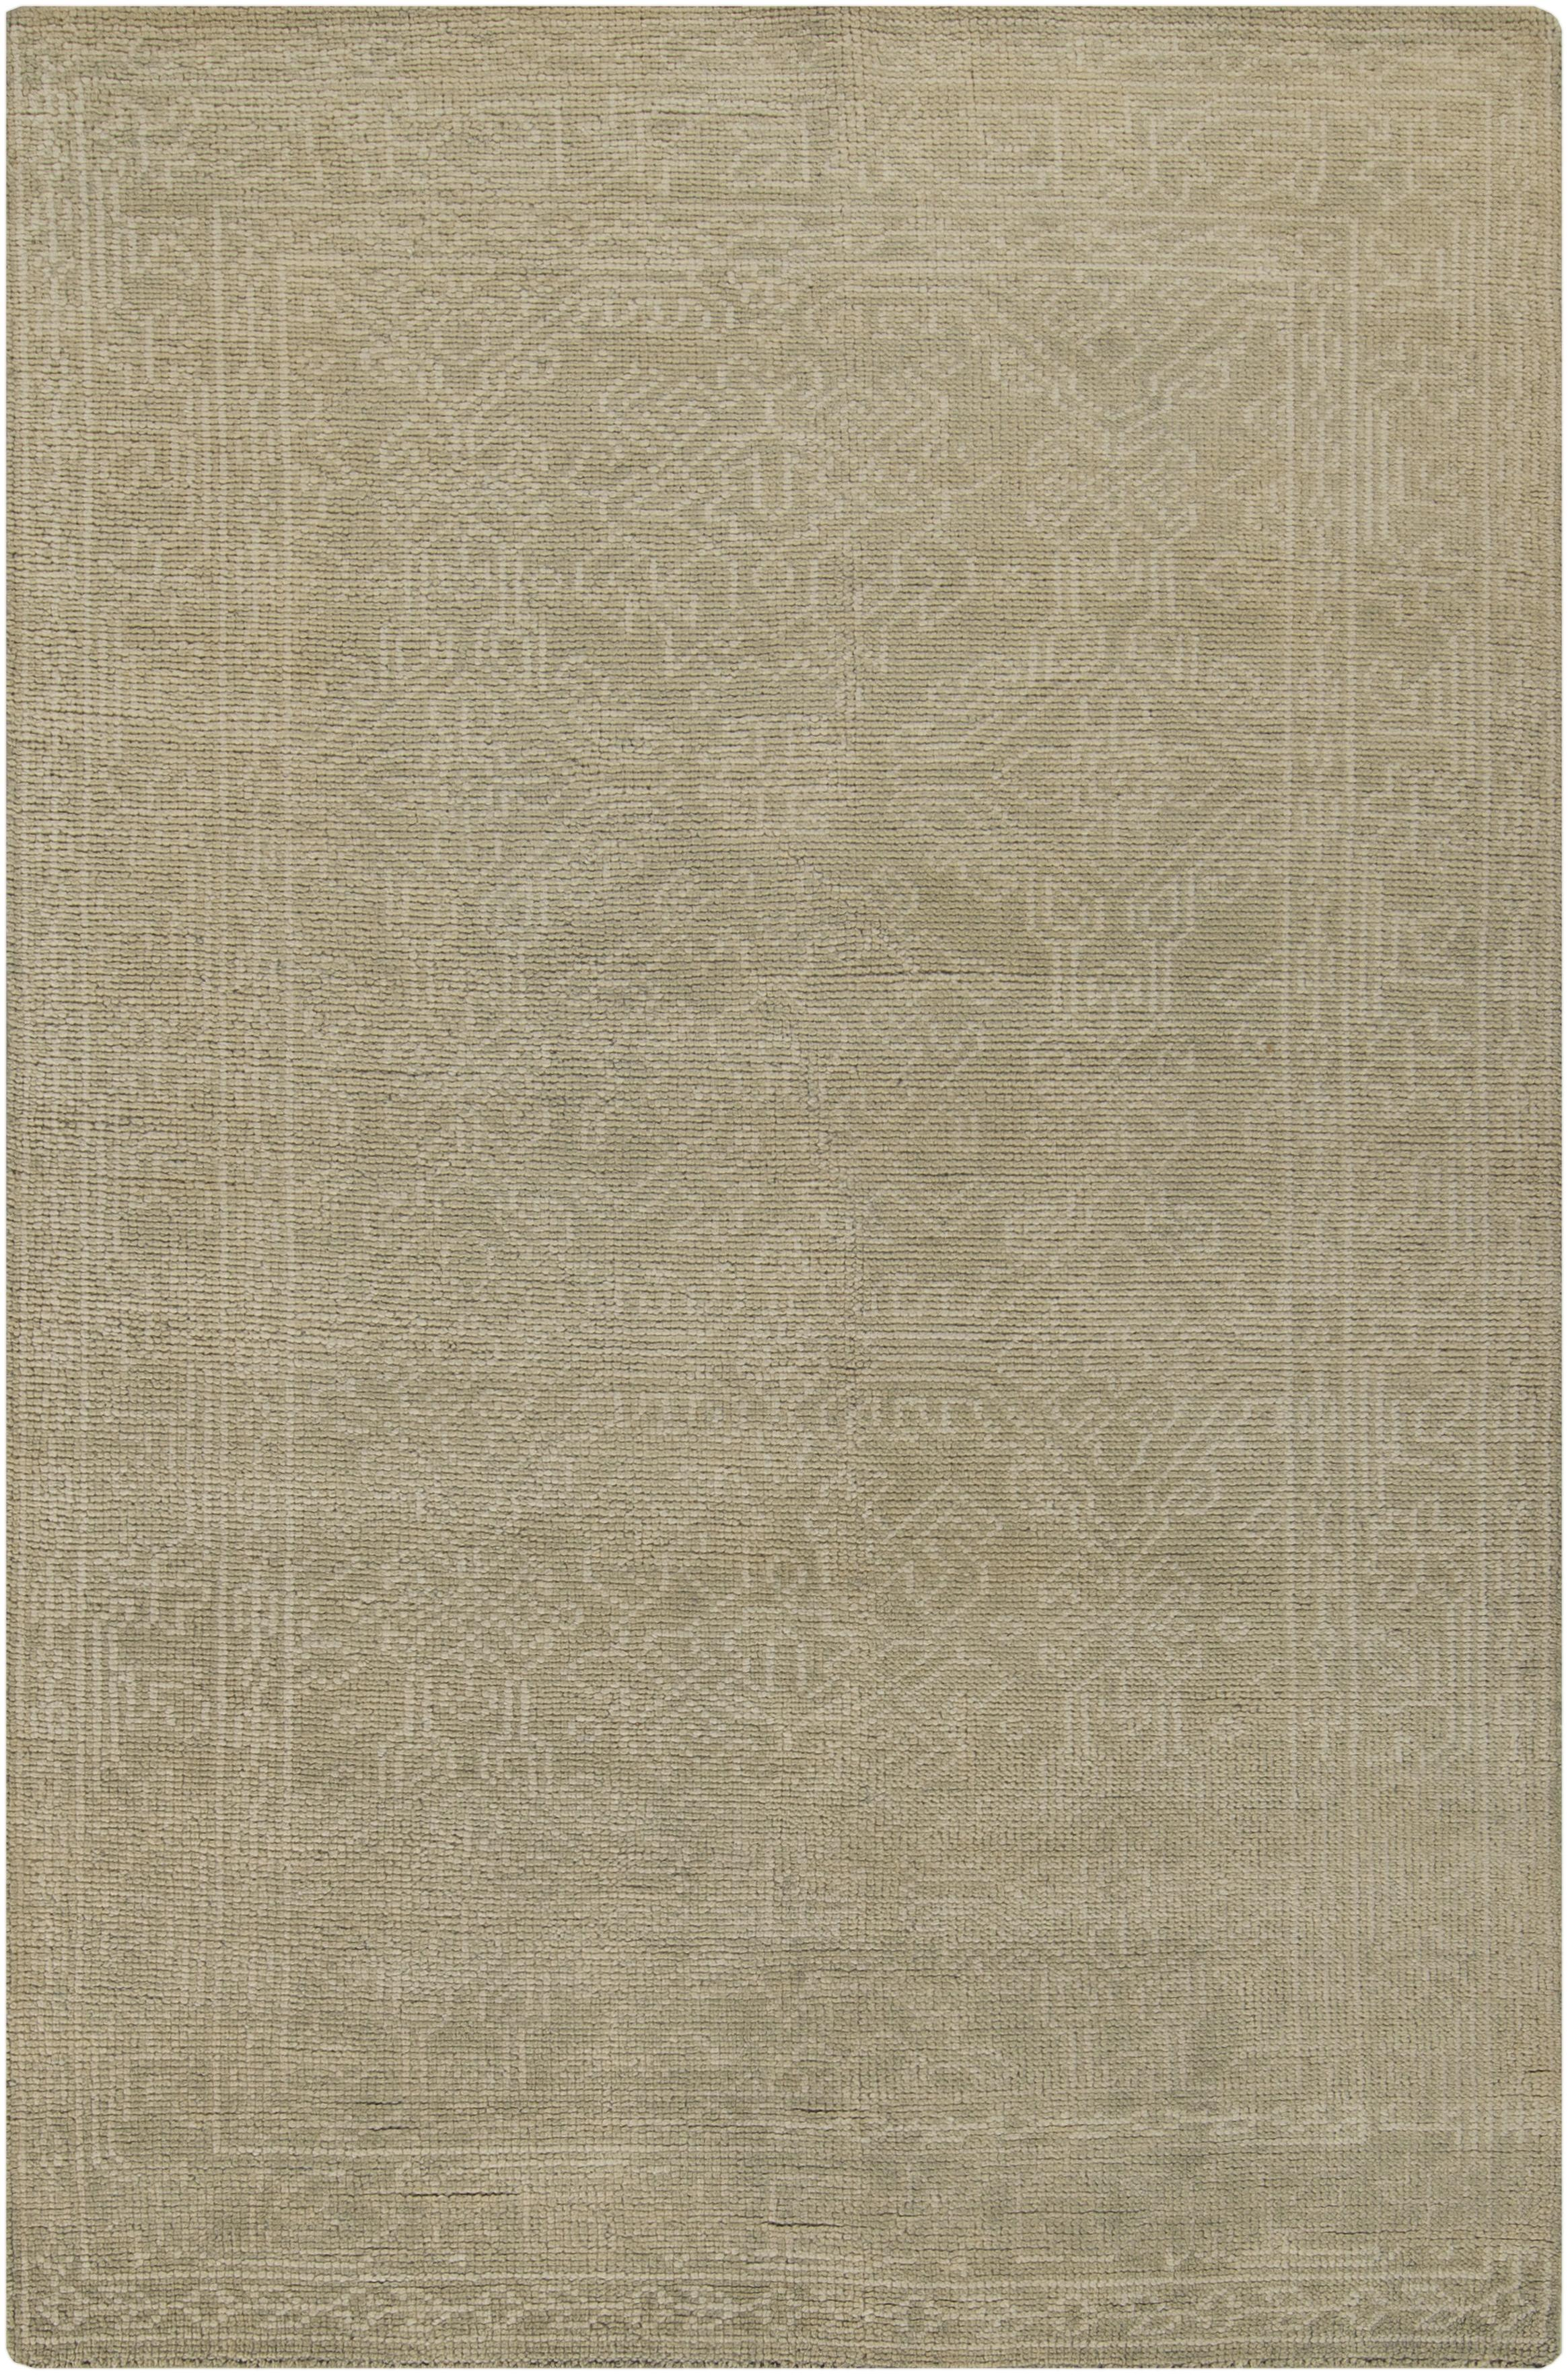 Surya Rugs Haven 9' x 13' - Item Number: HVN1215-913